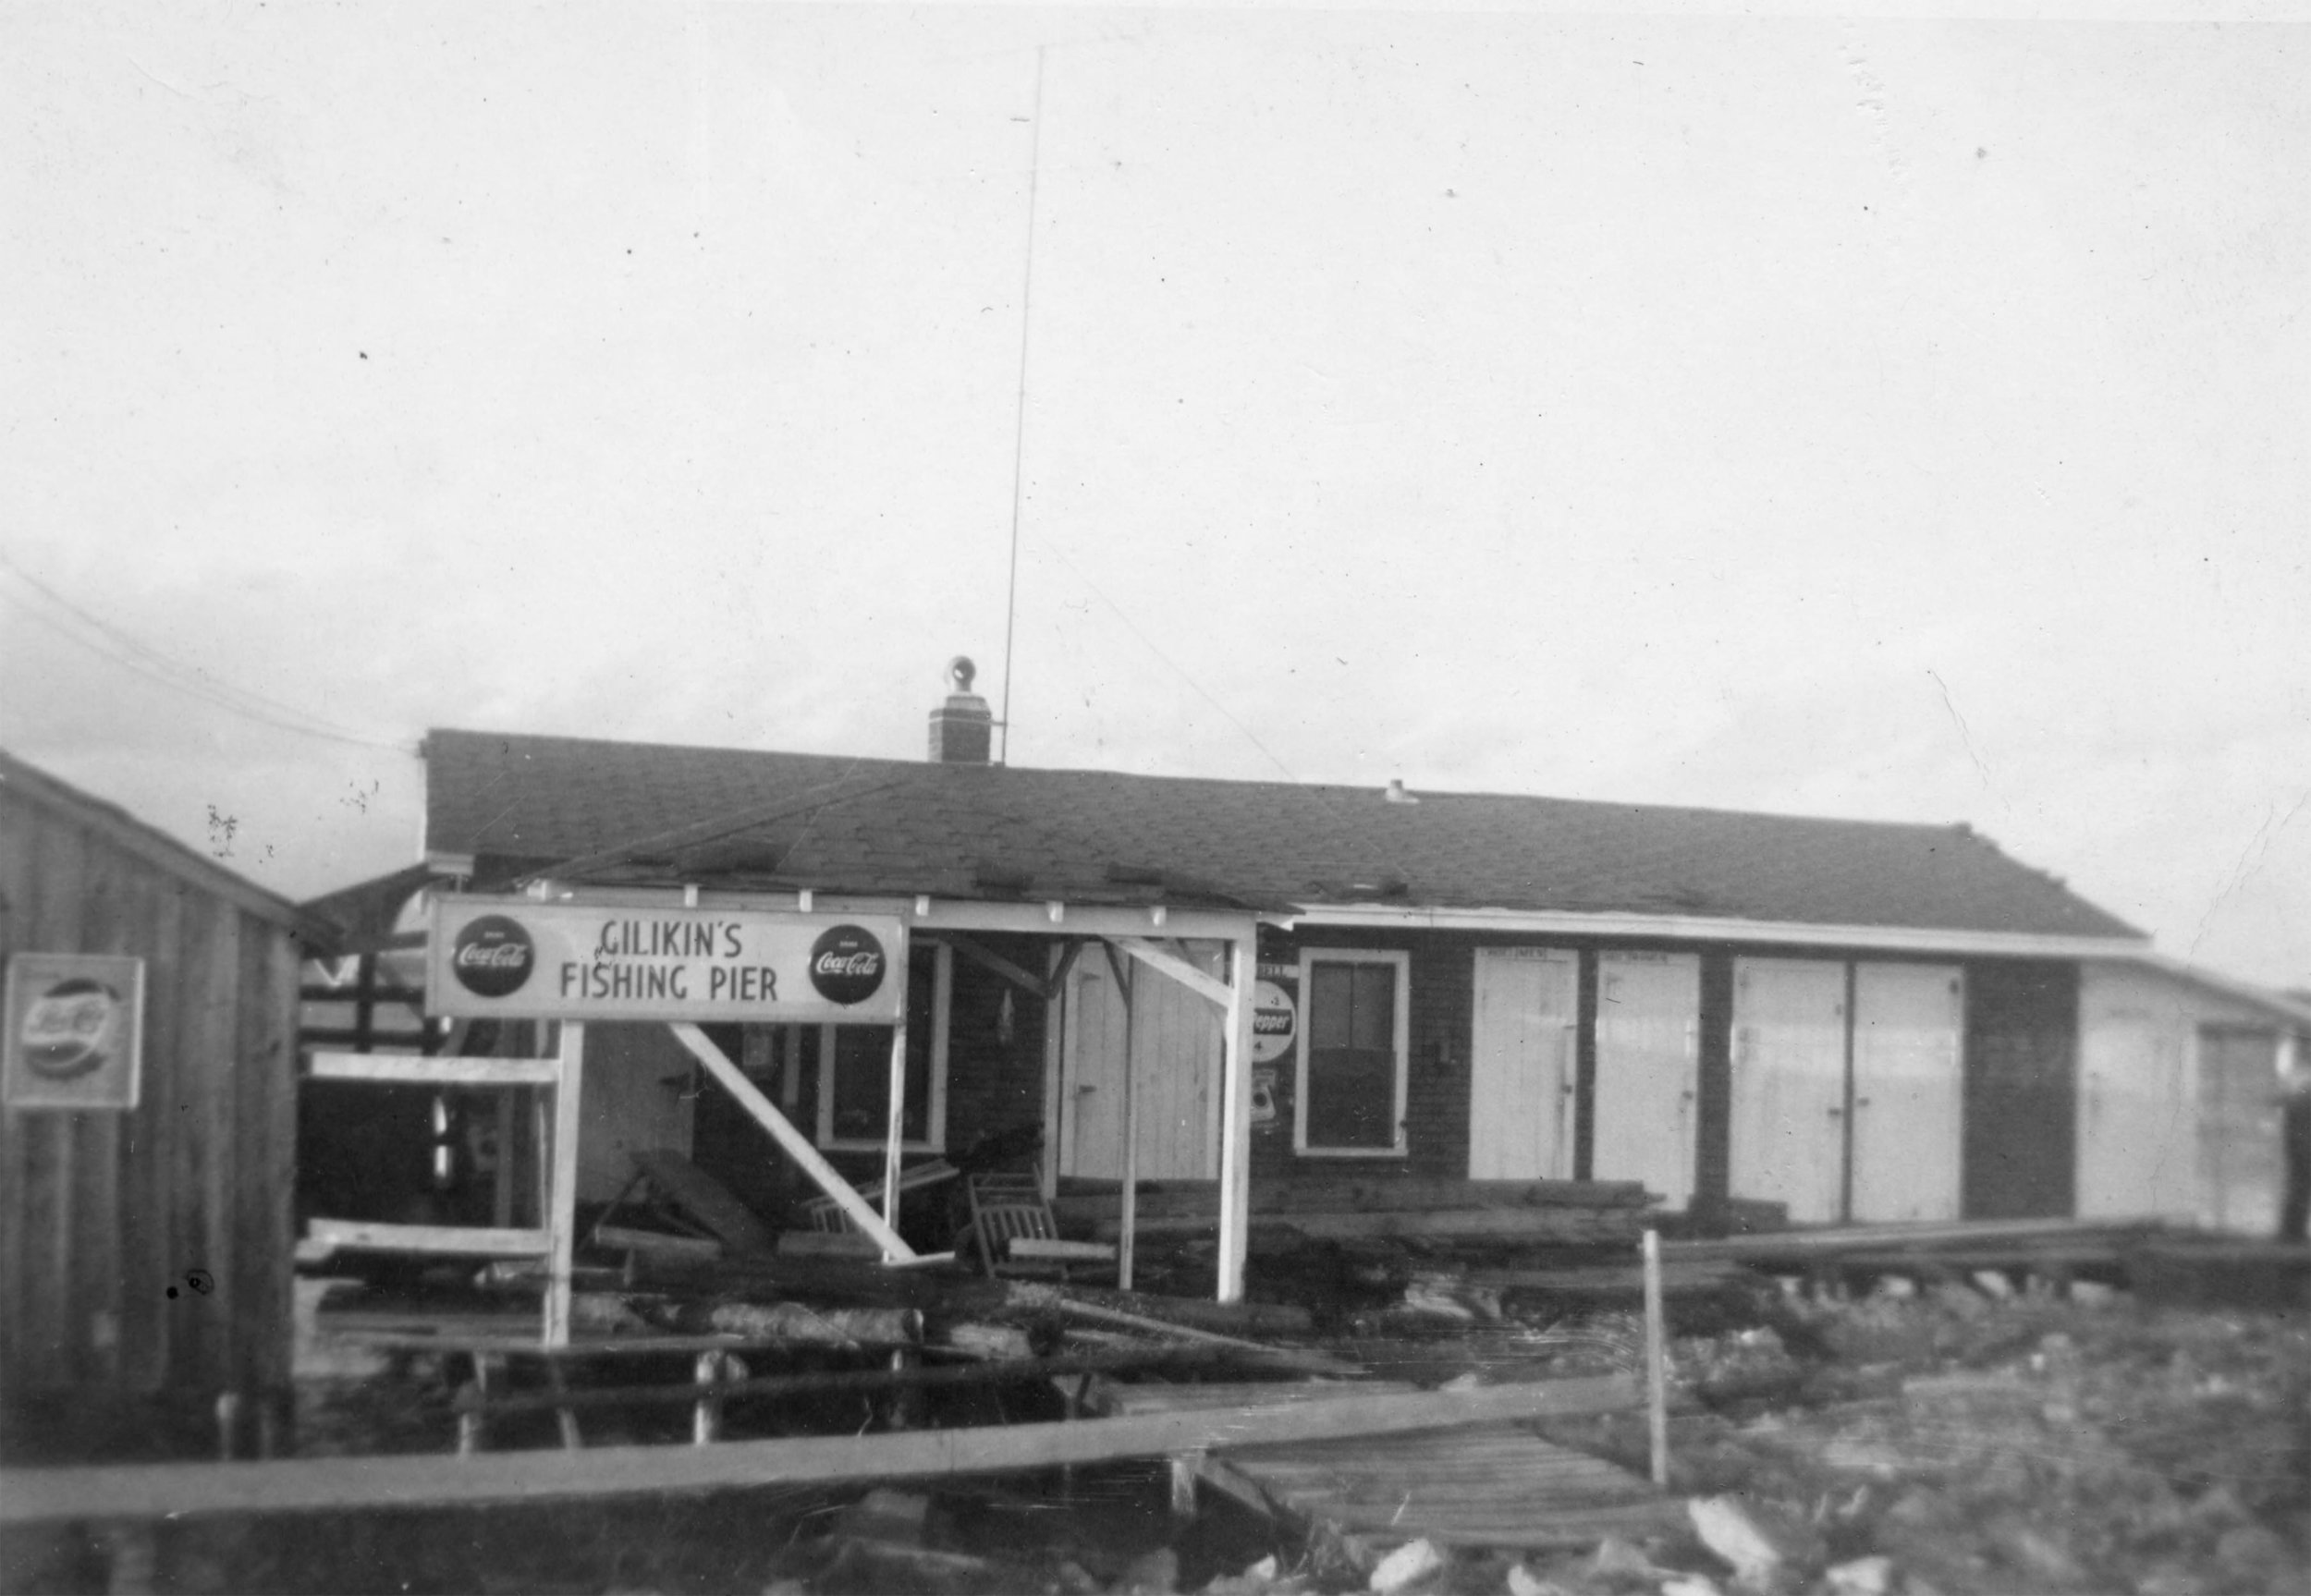 H. Gillikin's fishing pier after a hurricane, probably Hazel. Formerly located on the Bettie side of the North River bridge.